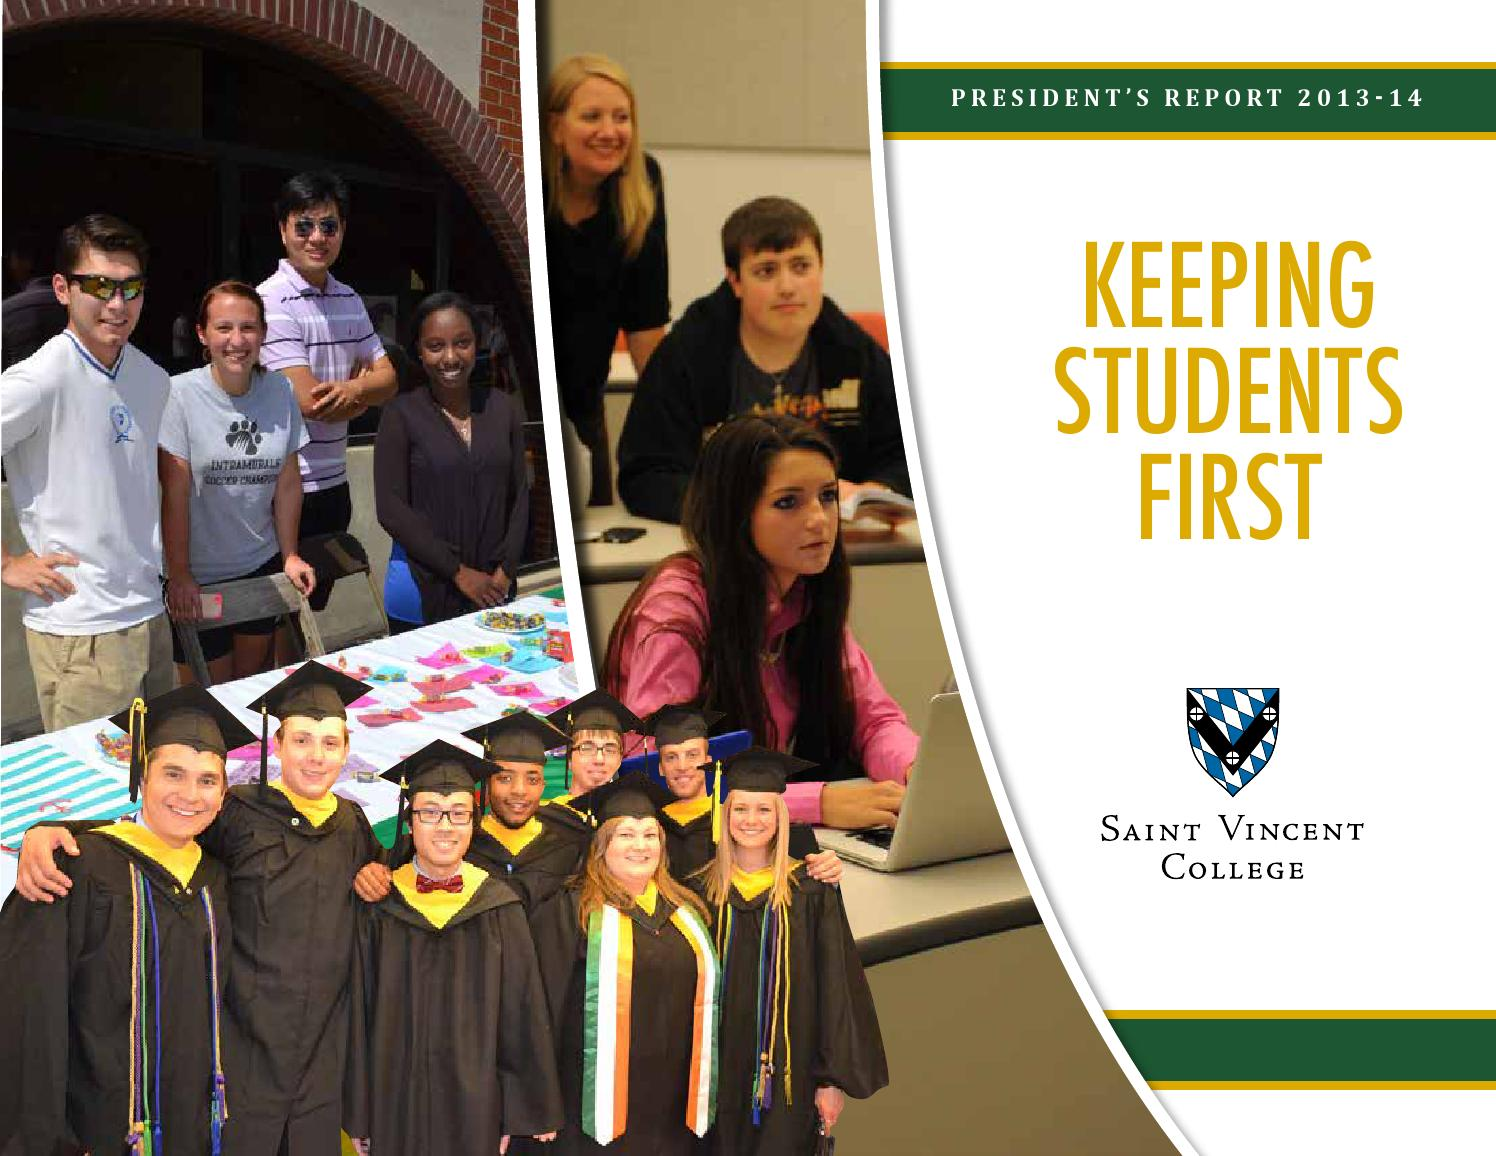 President S Report 2013 14 By Saint Vincent College Issuu